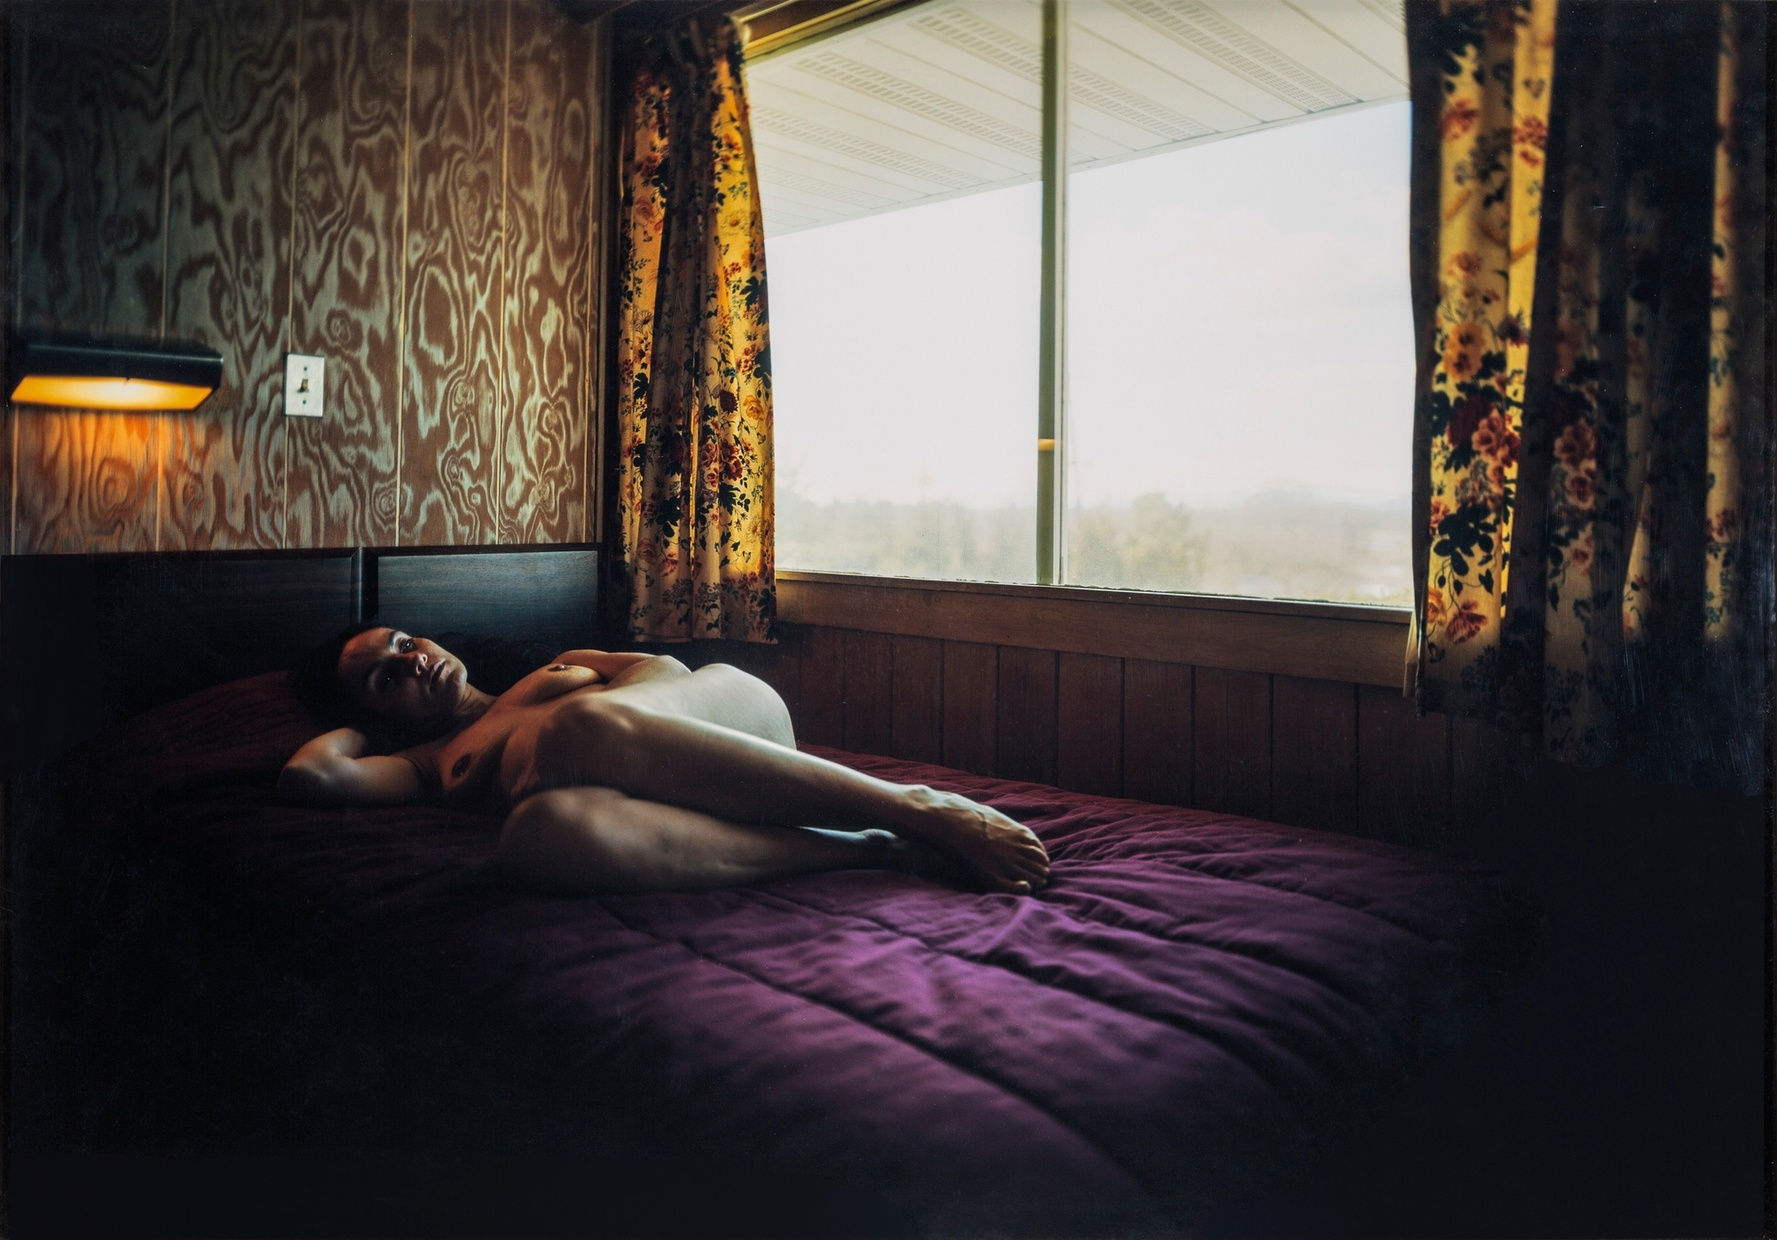 A photograph by Malerie Marder of a naked light-skinned woman laying down on a bed beside a window in a dimly lit room.